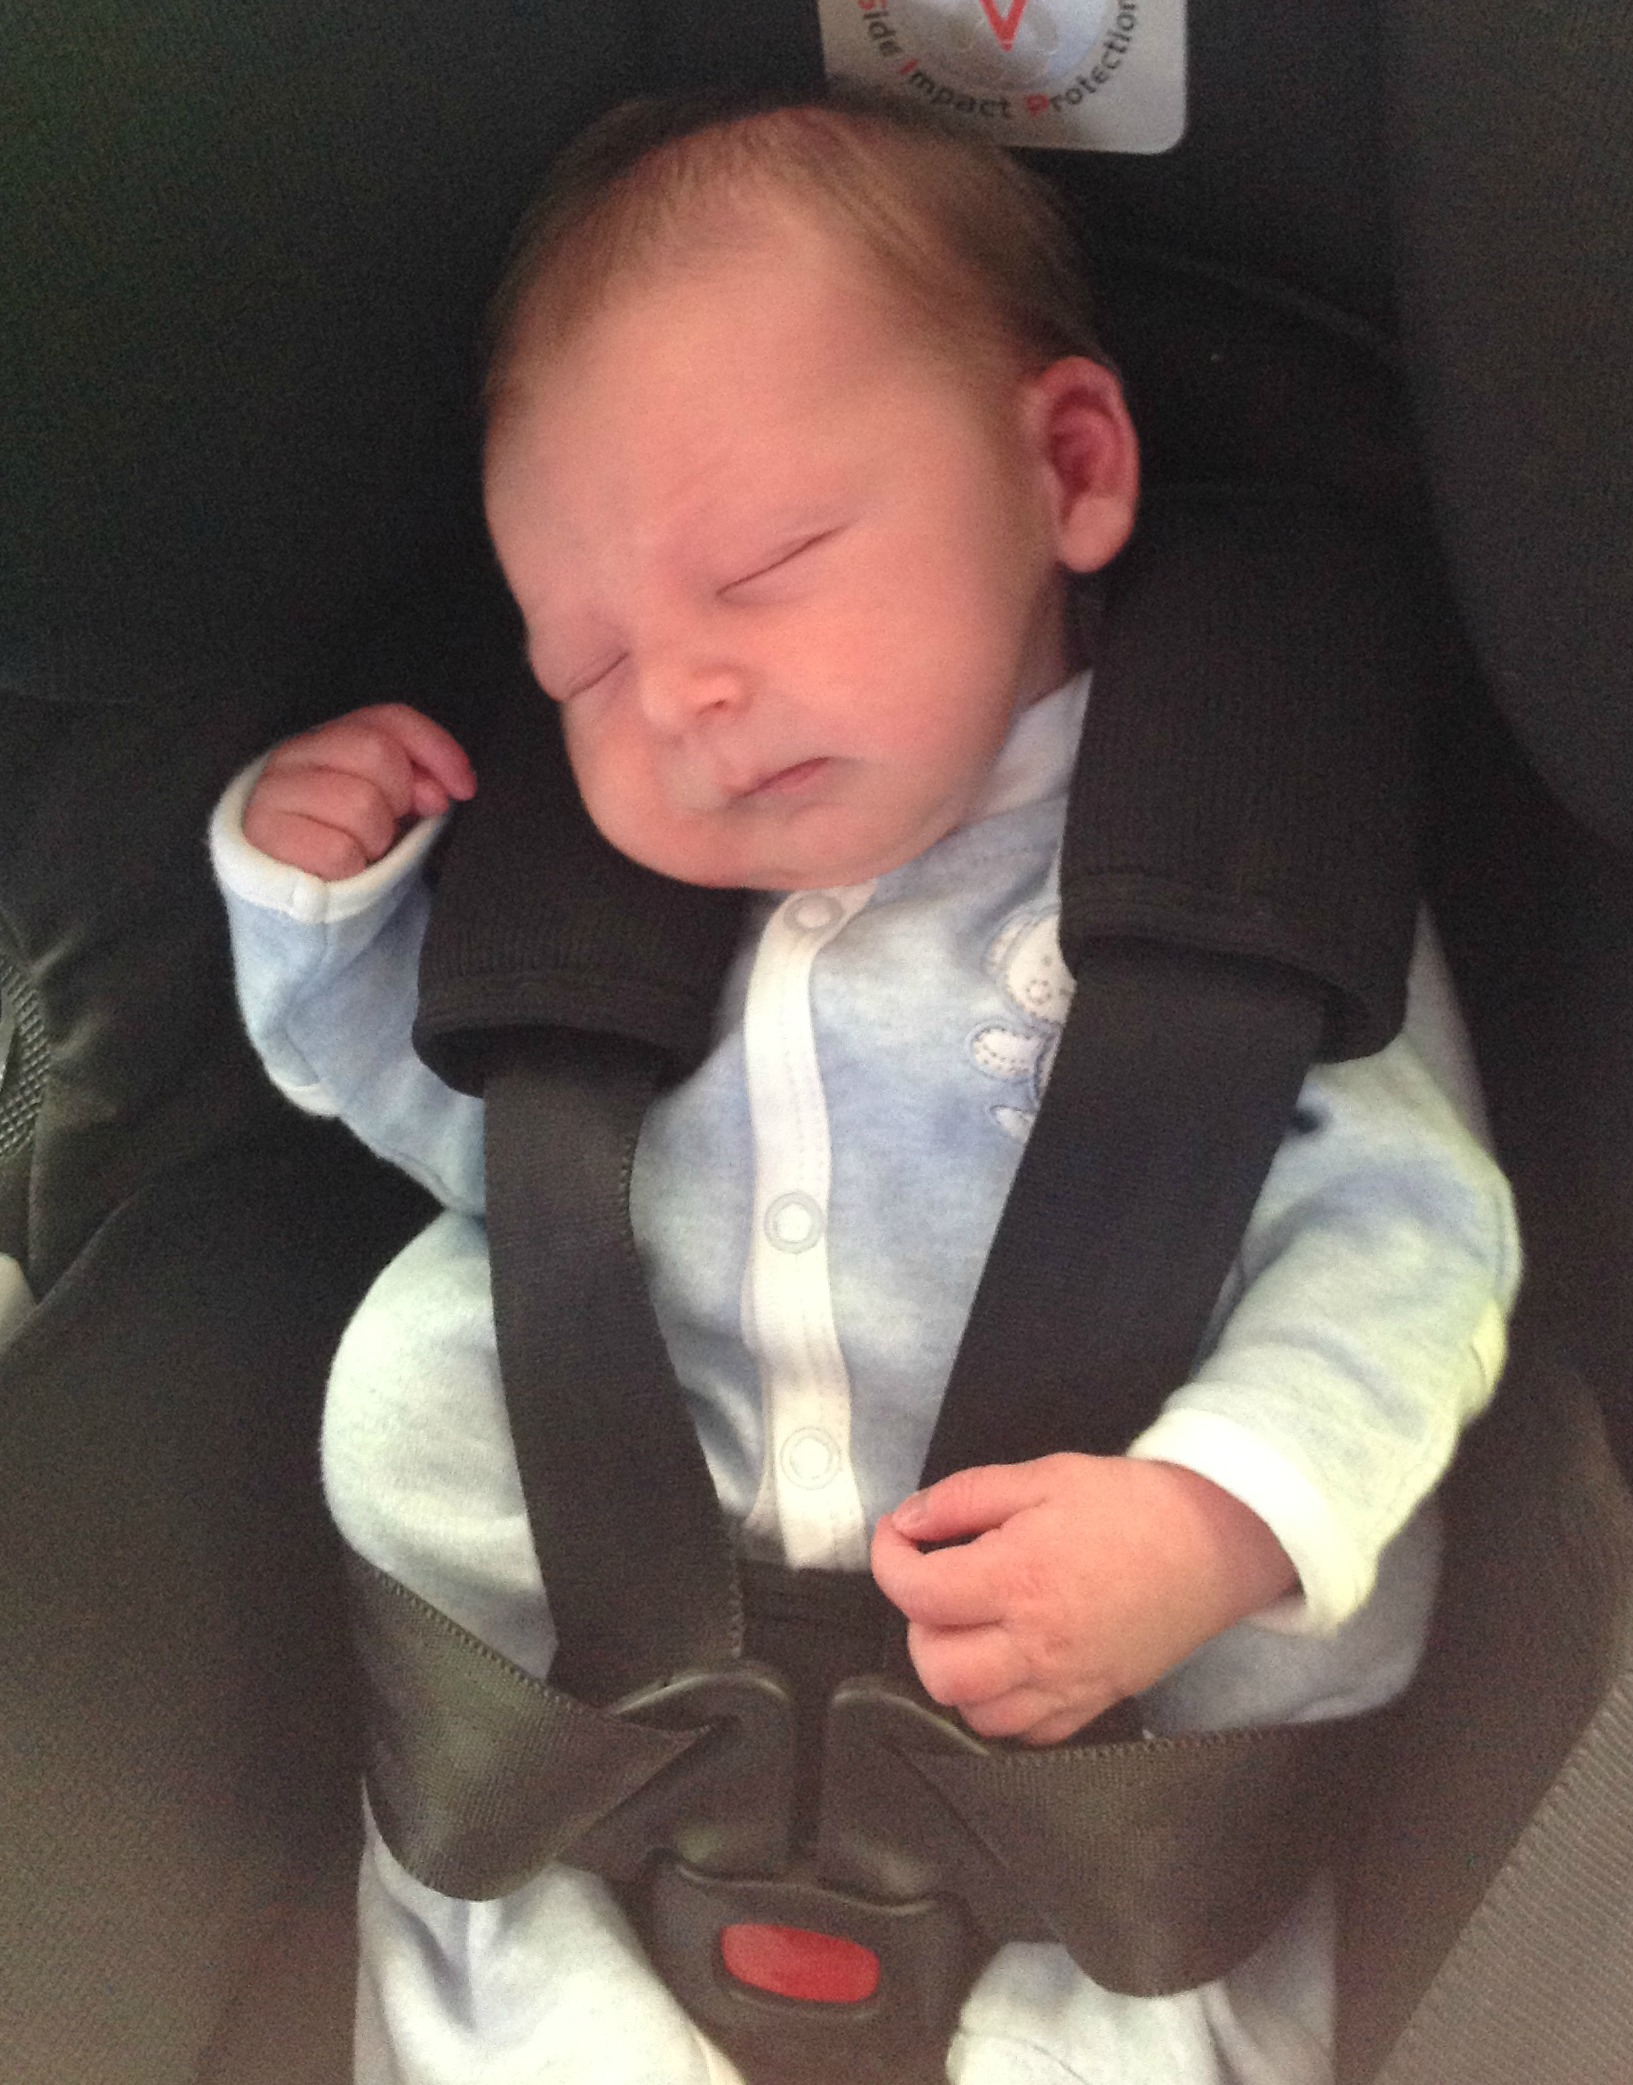 The Day My Baby Nearly Died In His Car Seat